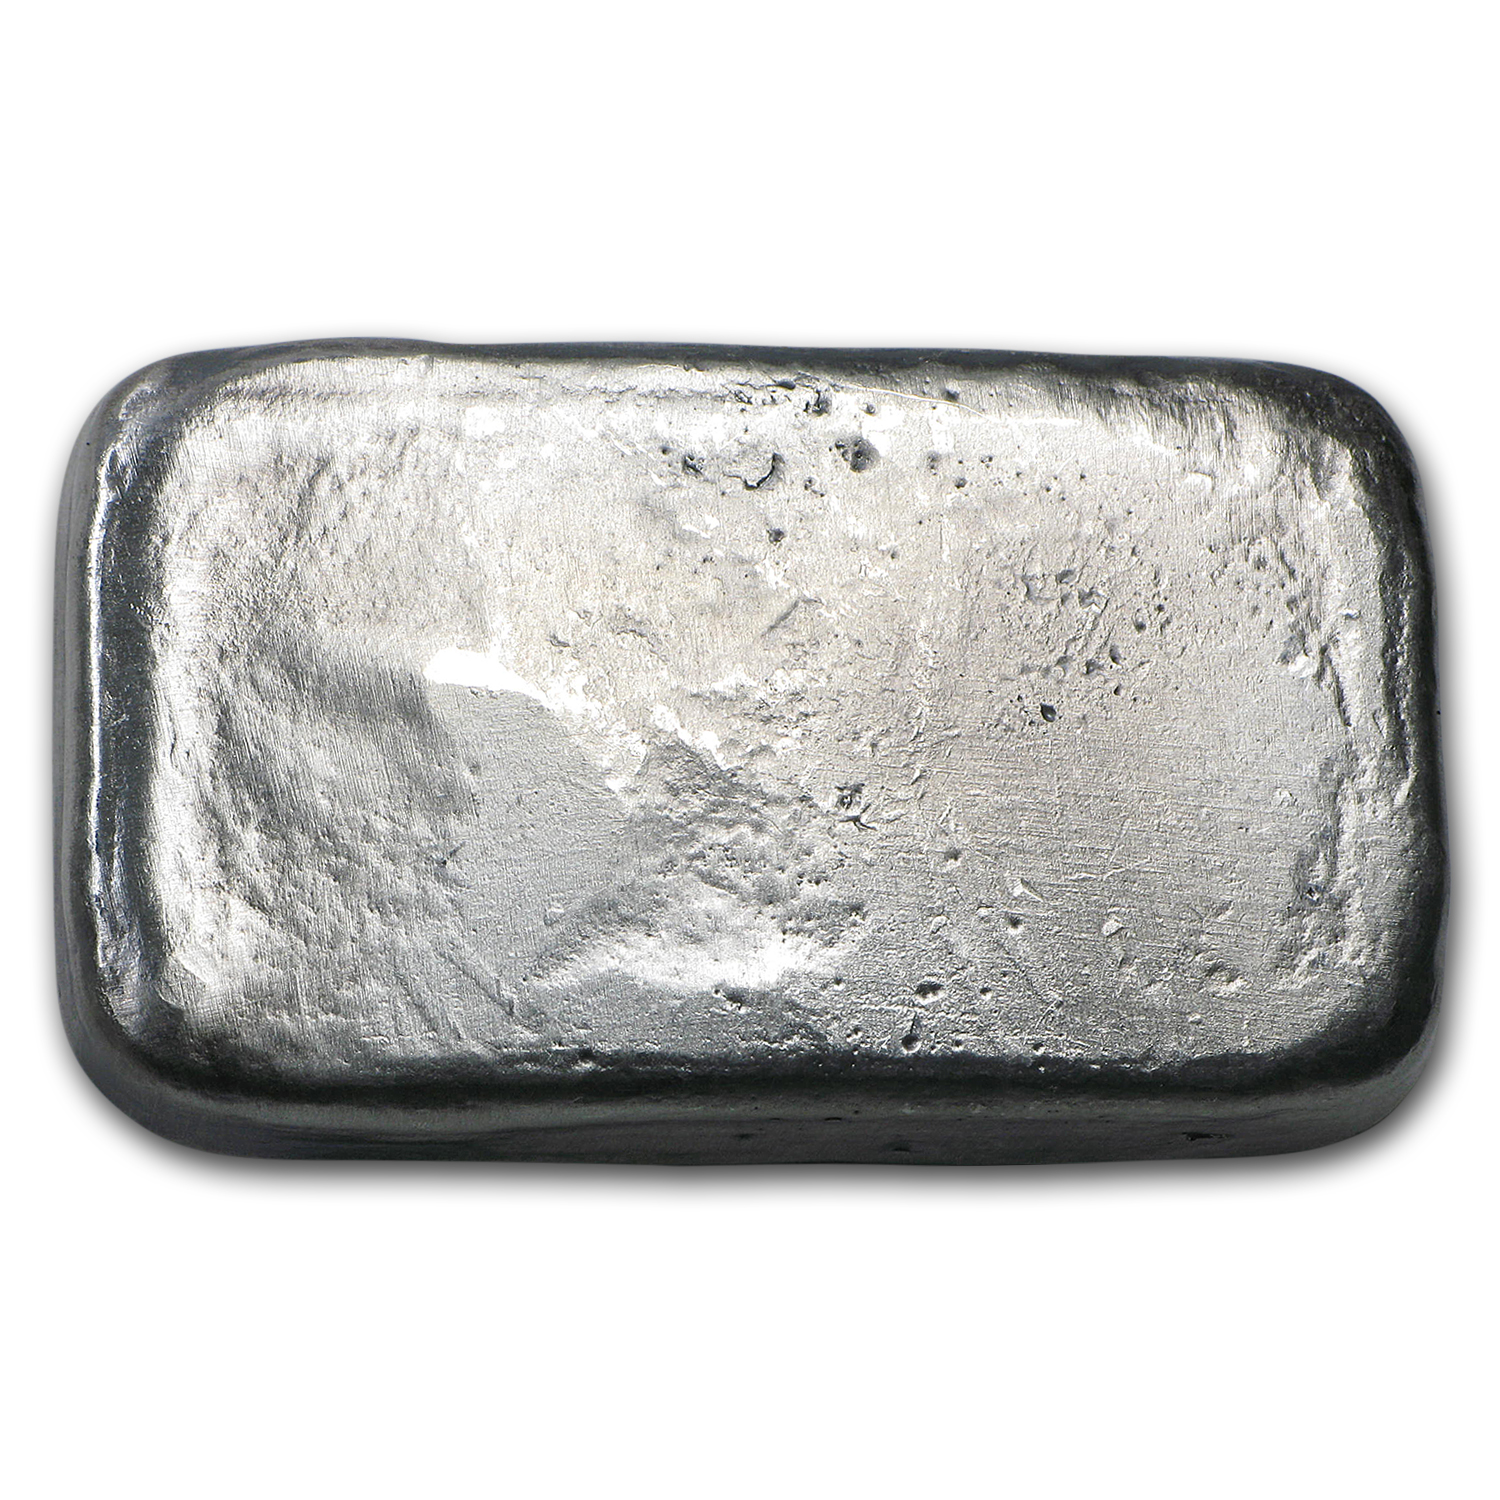 4 oz Silver Bar - Bison Bullion